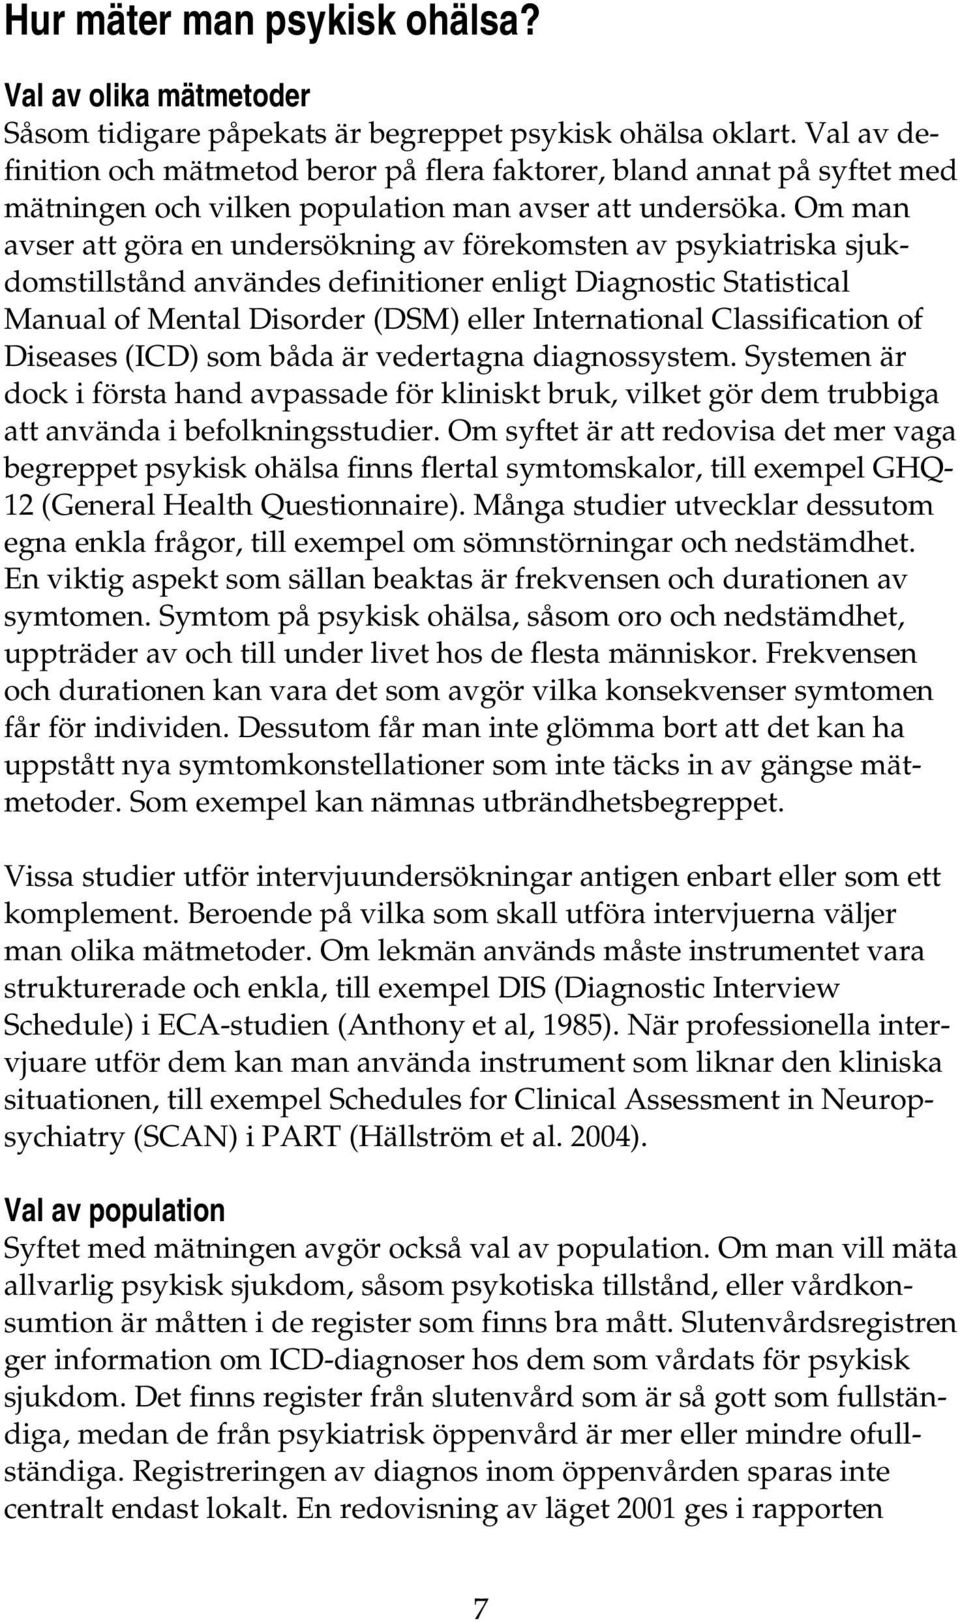 Om man avser att göra en undersökning av förekomsten av psykiatriska sjukdomstillstånd användes definitioner enligt Diagnostic Statistical Manual of Mental Disorder (DSM) eller International